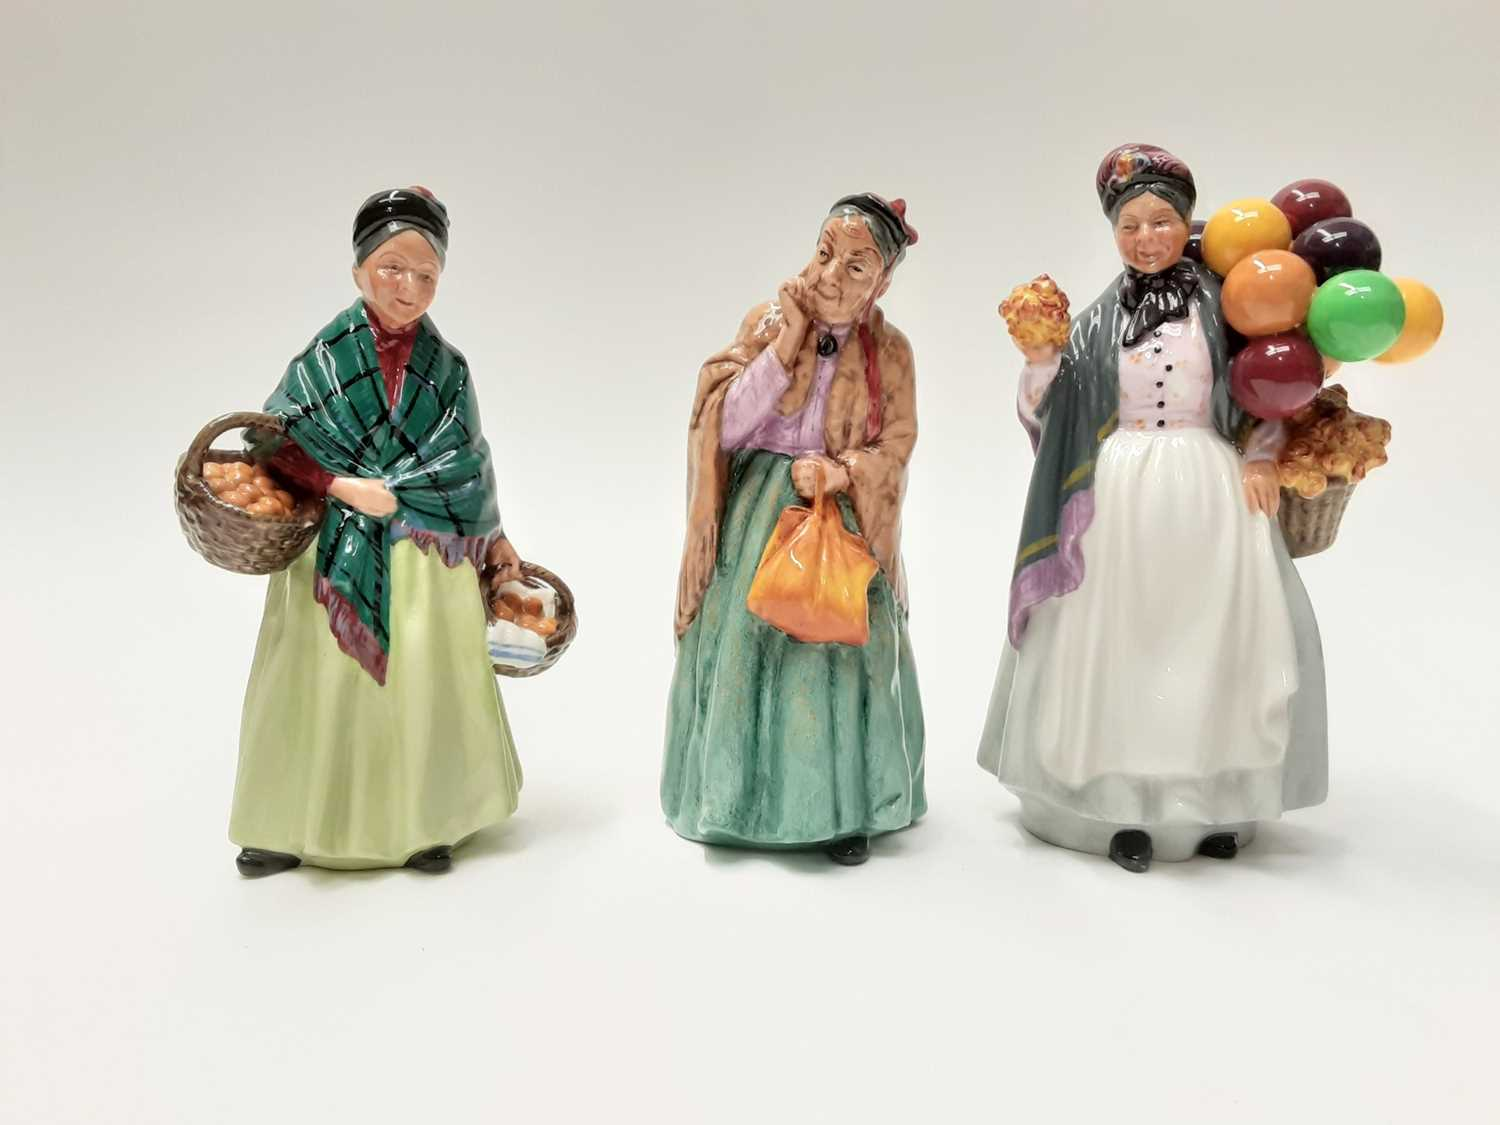 Lot 37 - Three Royal Doulton figures - Biddy Pennyfarthing HN1843, The Orange Lady HN1953 and Bridget HN2070